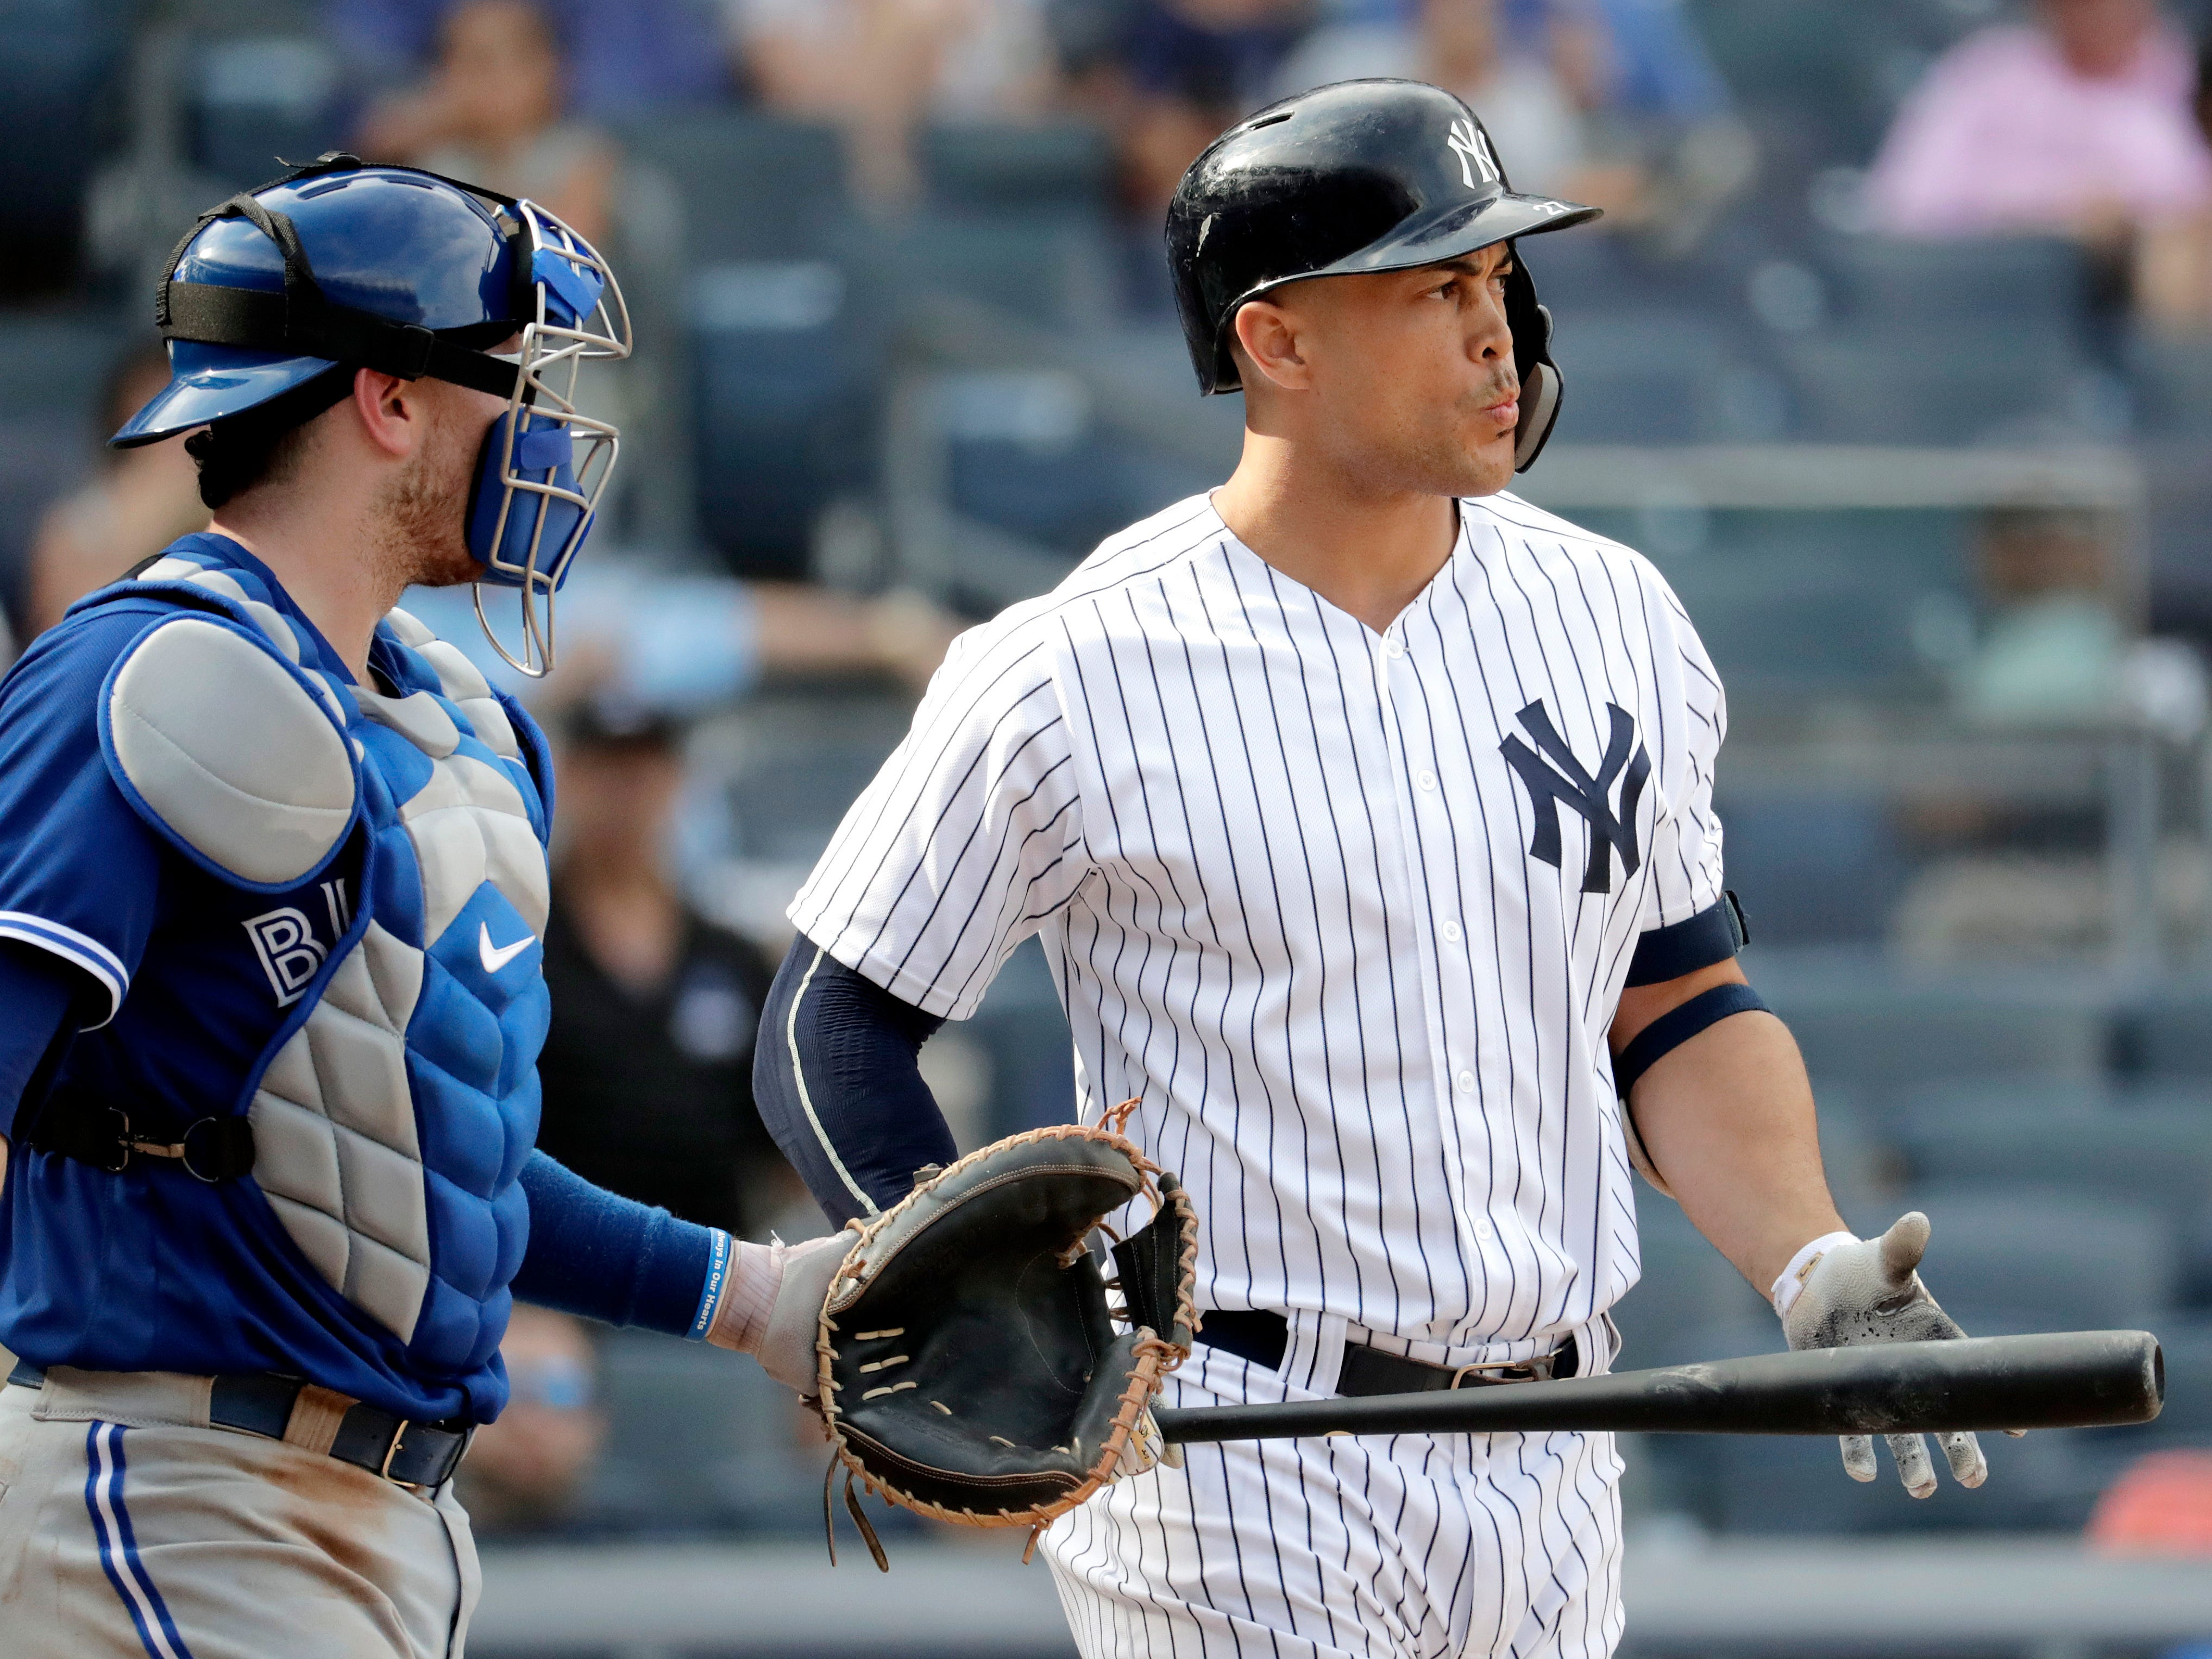 New York Yankees designated hitter Giancarlo Stanton, right, looks toward the mound as Toronto Blue Jays catcher Danny Jansen watches him after Stanton was hit by a pitch from relief pitcher Luis Santos during the eighth inning of a baseball game, Saturday, Aug. 18, 2018, in New York. (AP Photo/Julio Cortez)